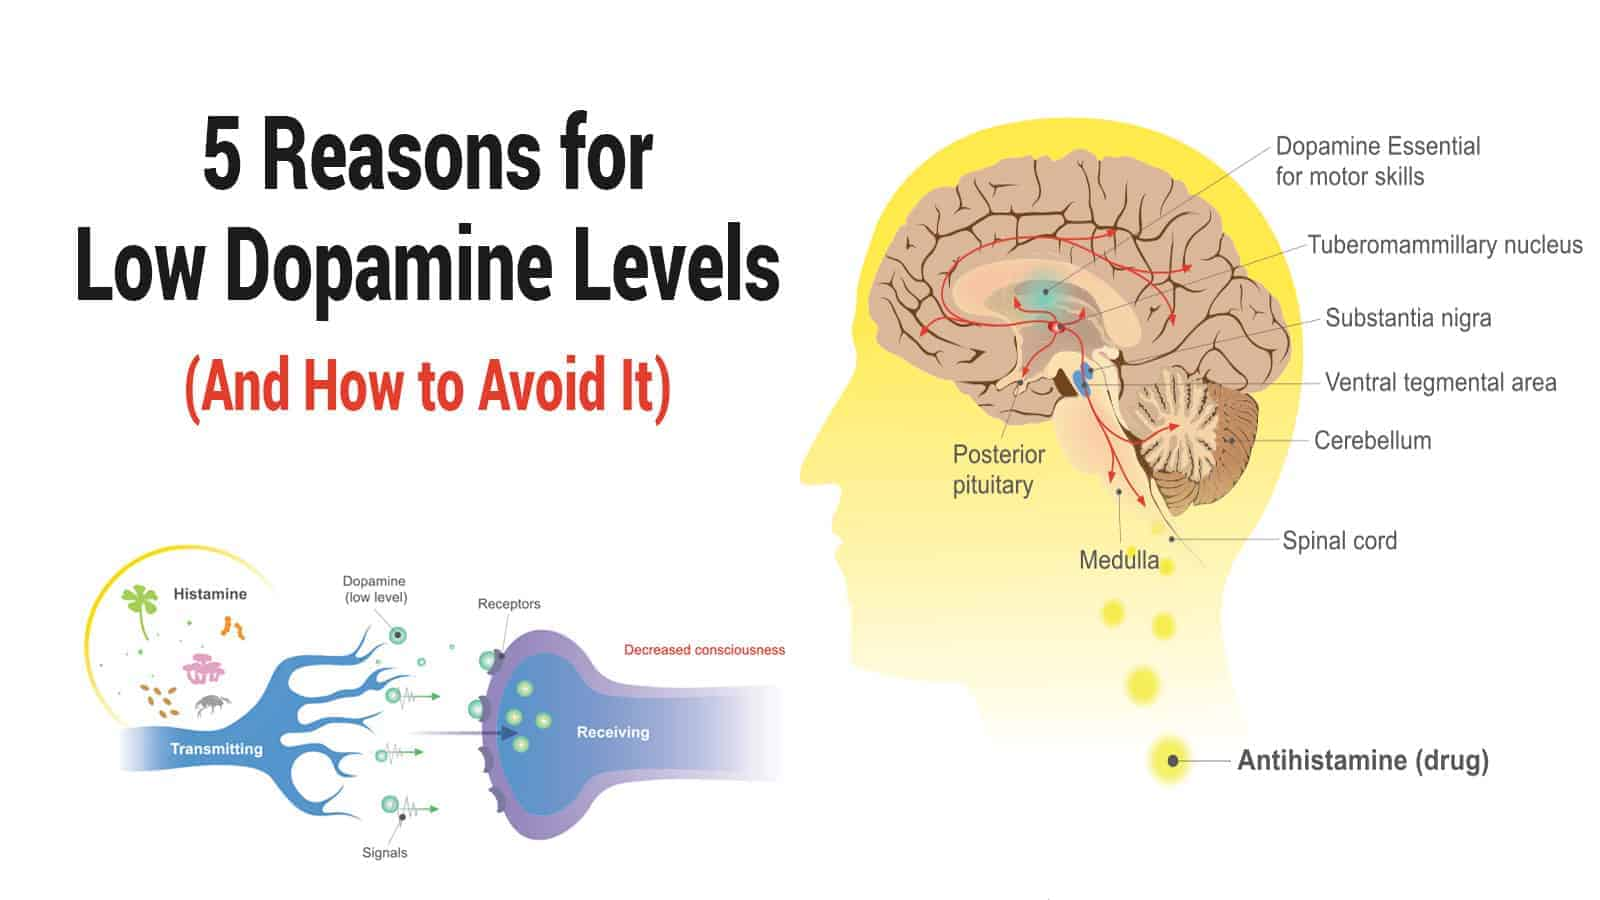 5 Reasons for Low Dopamine Levels (And How to Avoid It) »